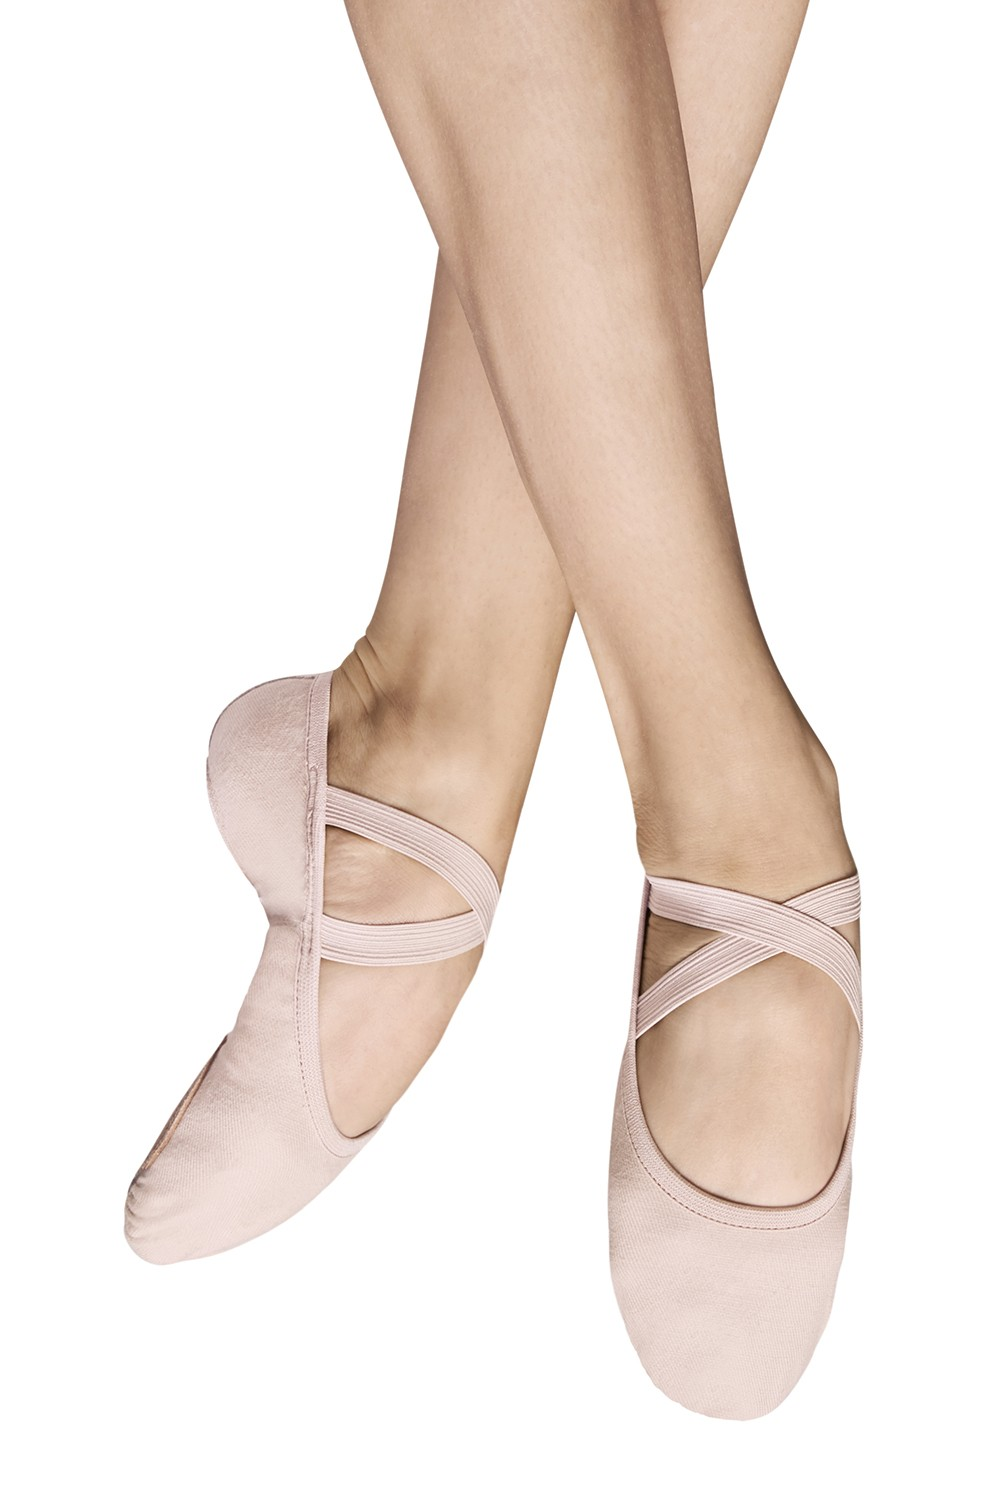 Performa - Enfant Girl's Ballet Shoes